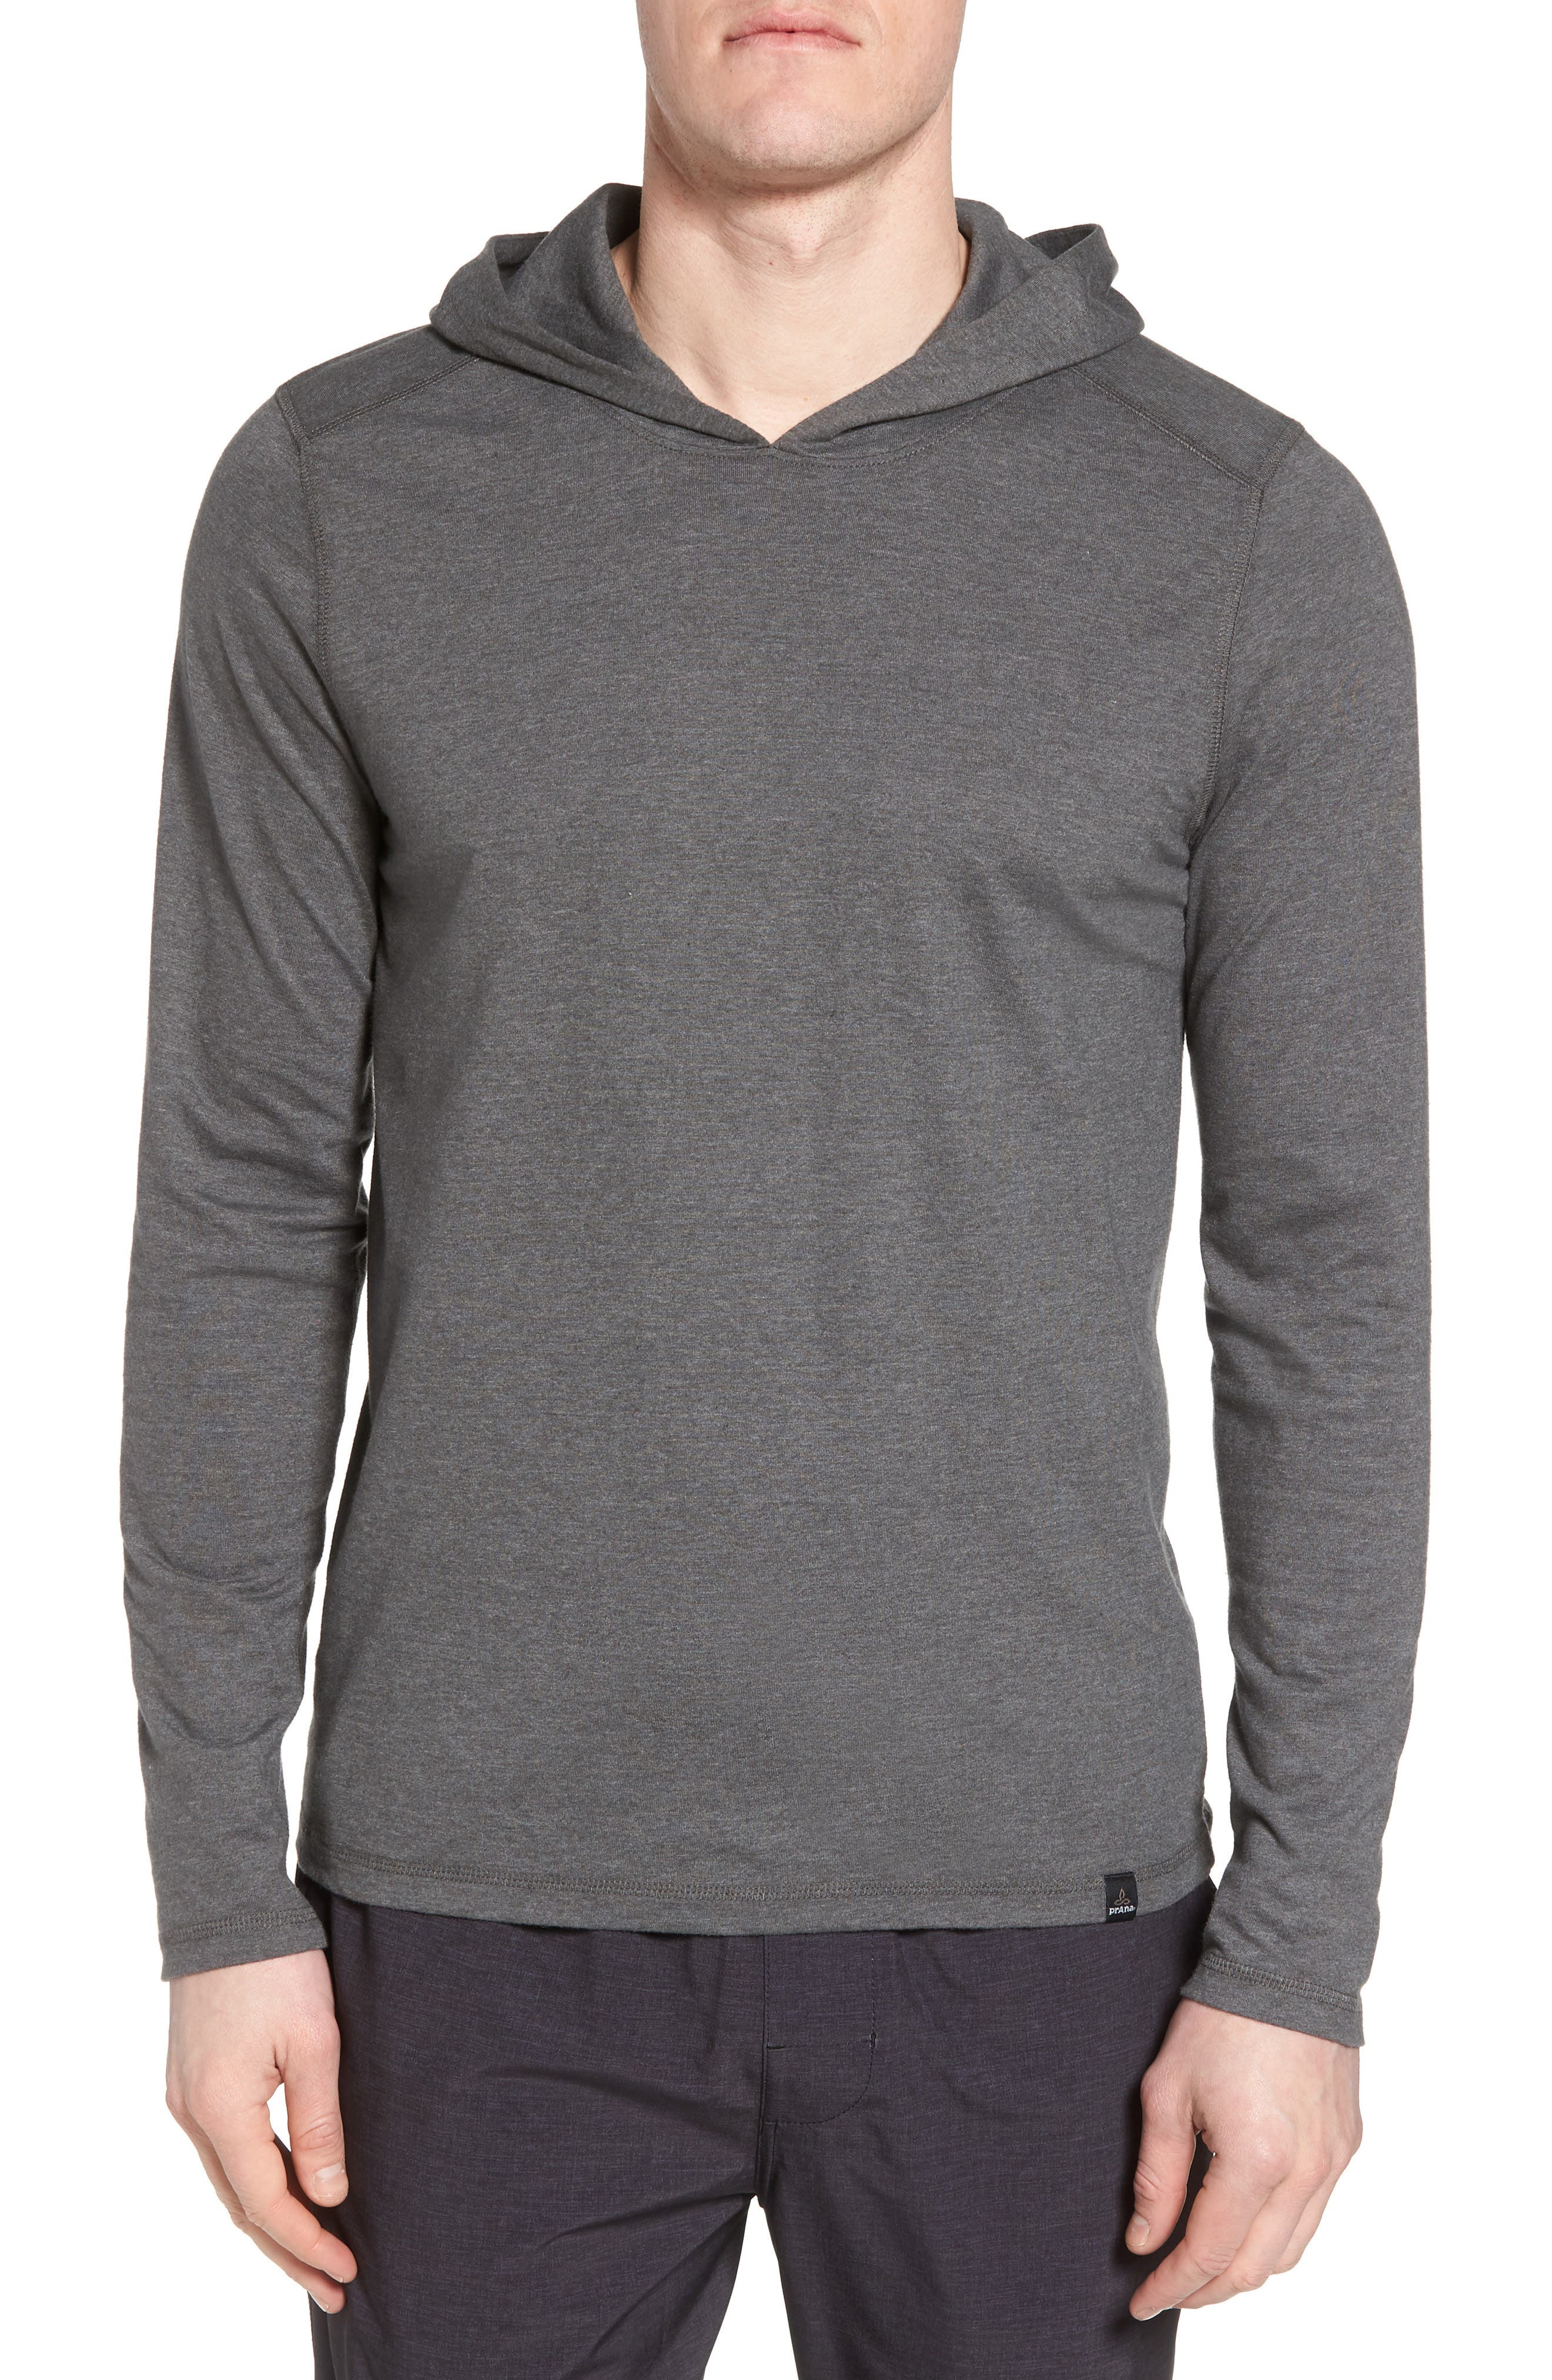 PRANA Cotton Blend Hoodie in Charcoal